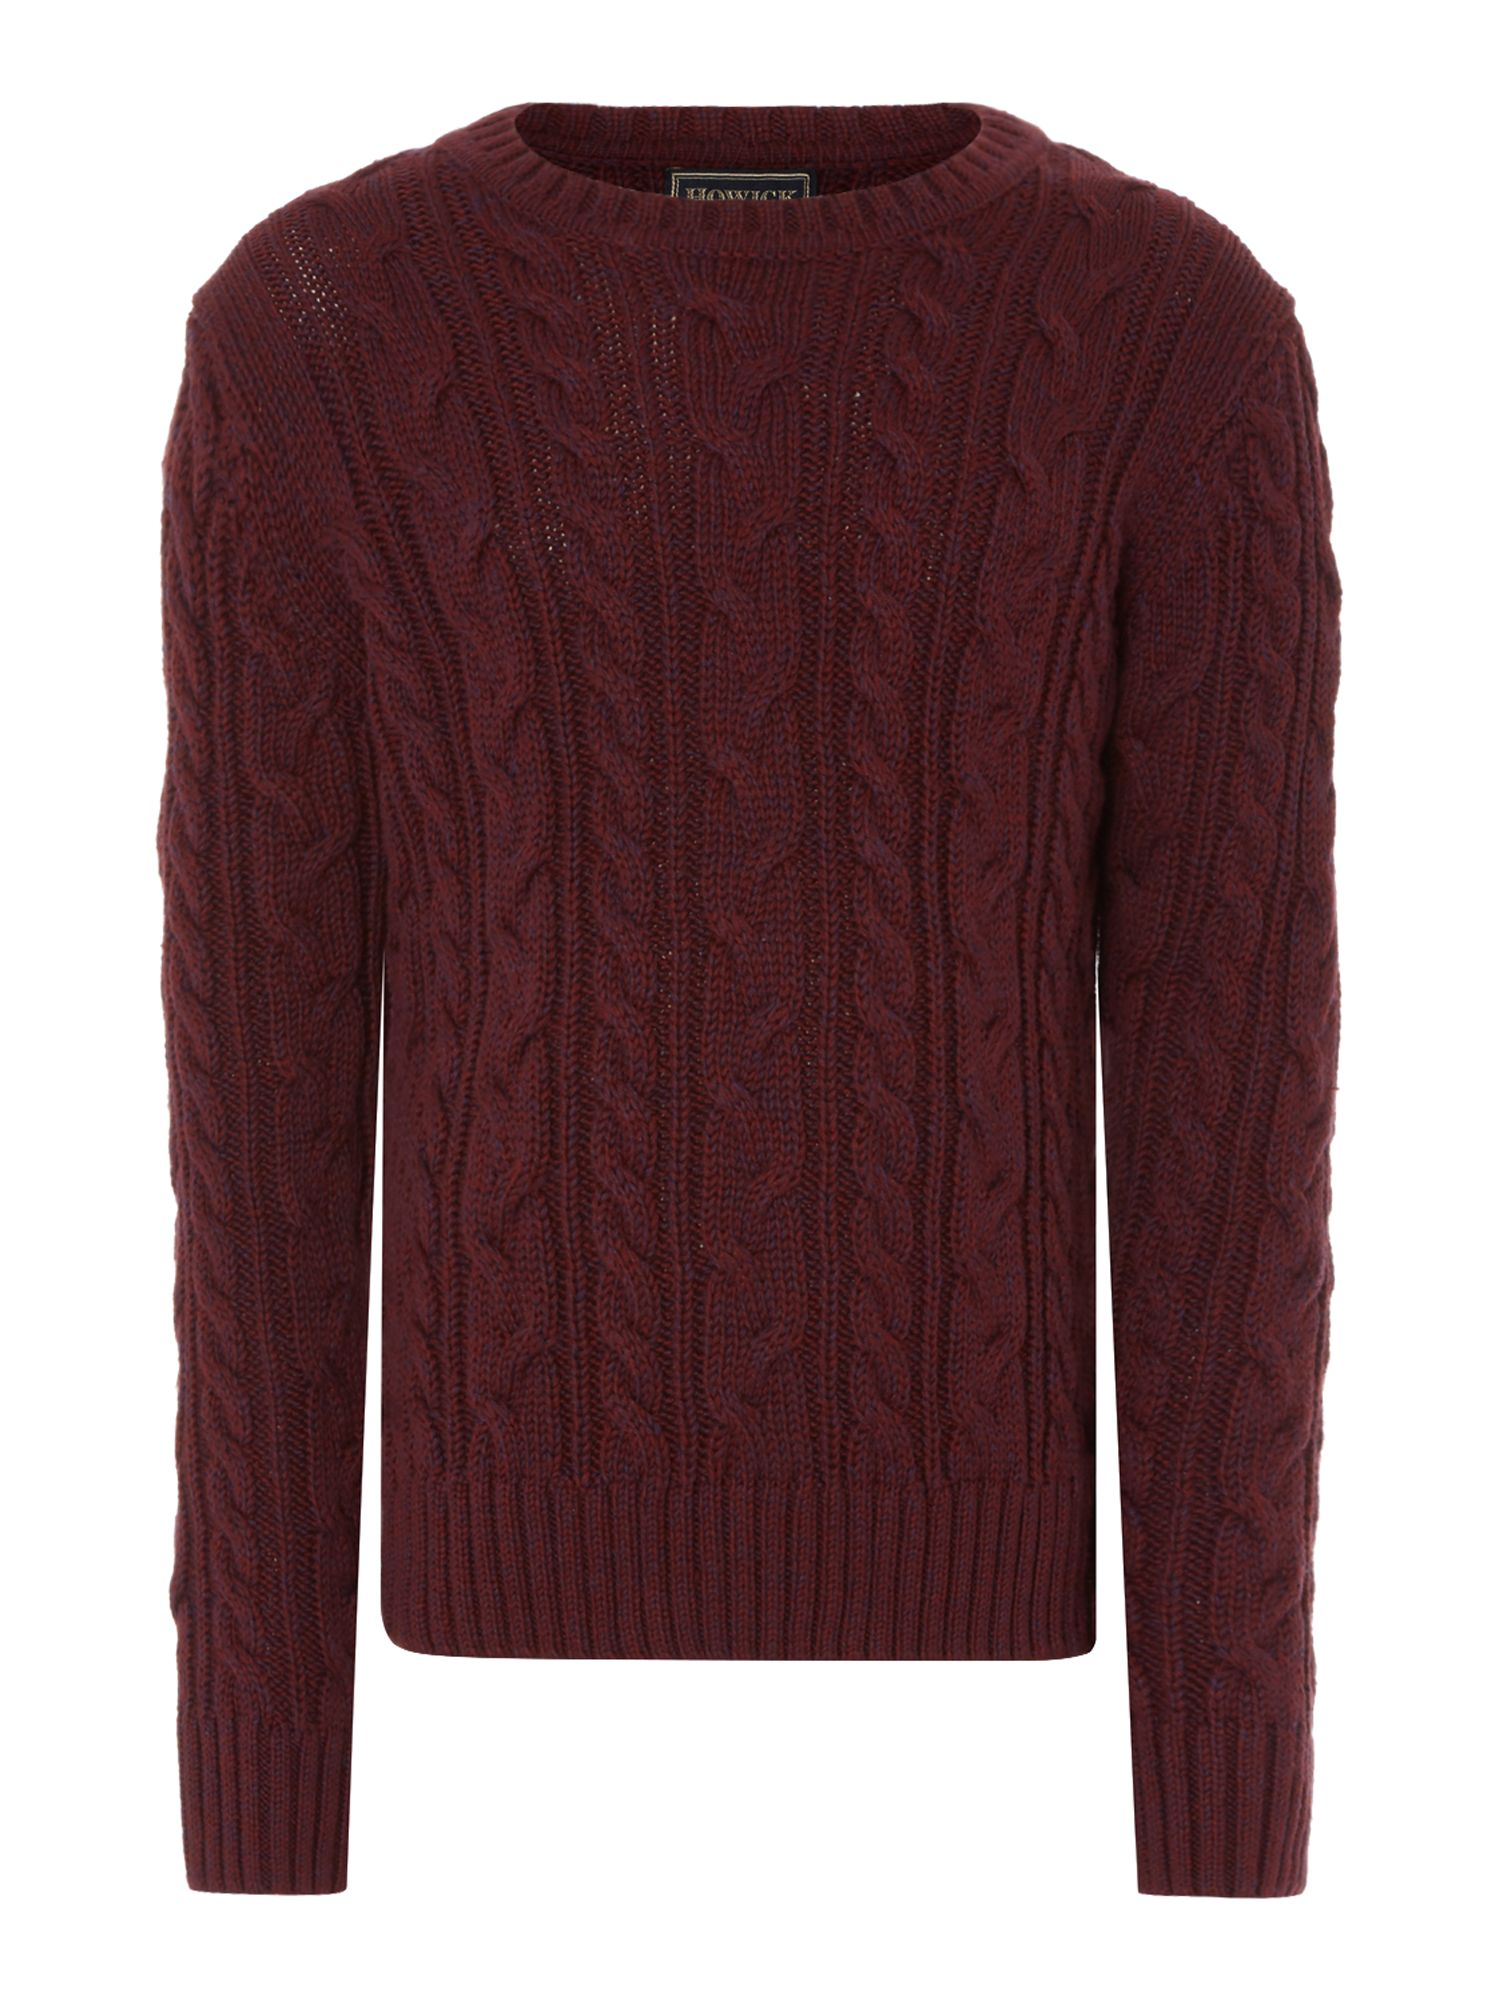 Howick Junior Howick Junior Boys Crew Neck Cable Knit Jumper, Red